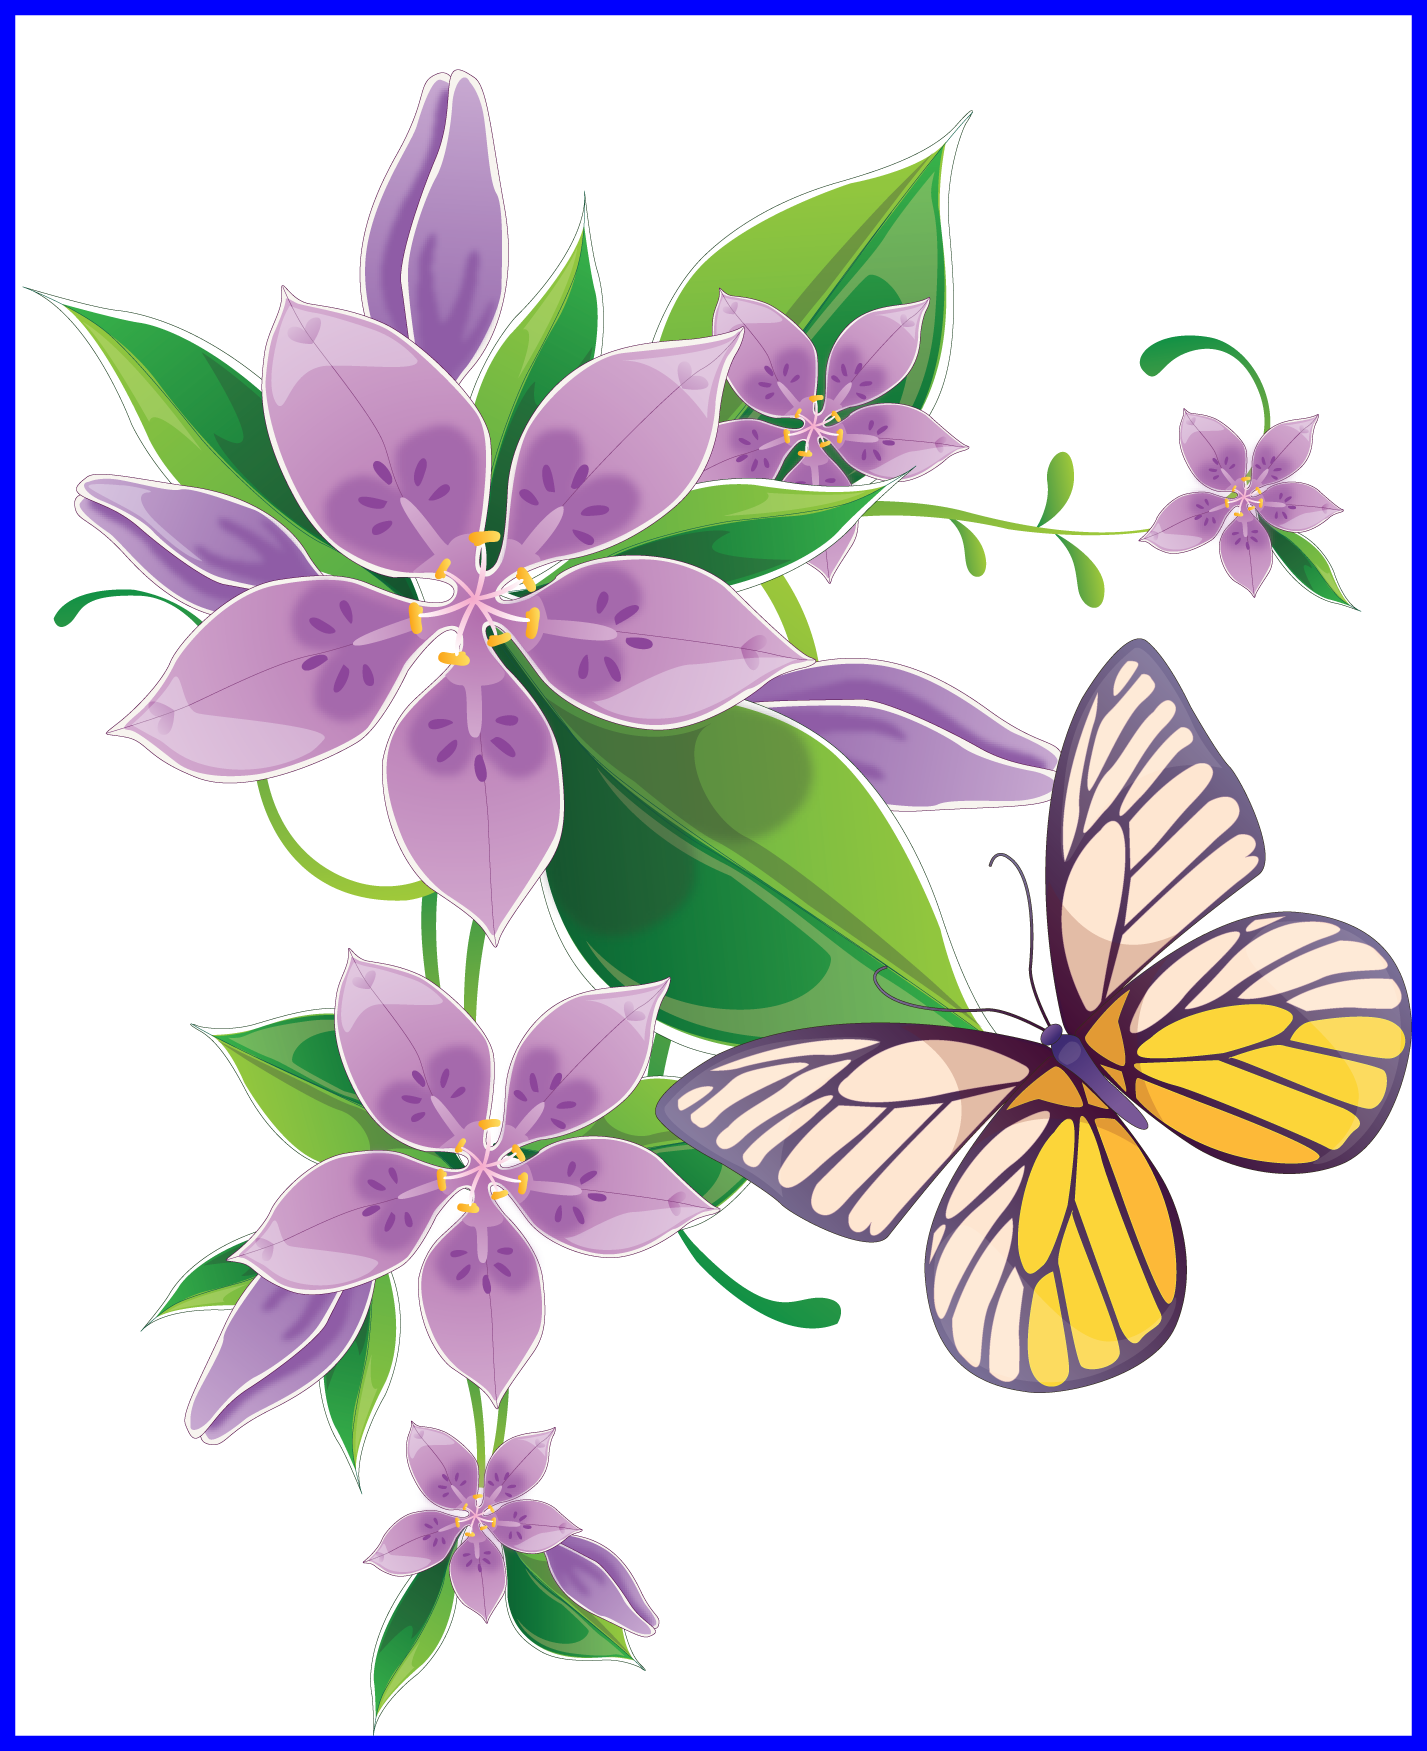 Butterfly on flower clipart picture library Best Clipart Butterflies For Butterfly On Flower Trends And Clip Art ... picture library